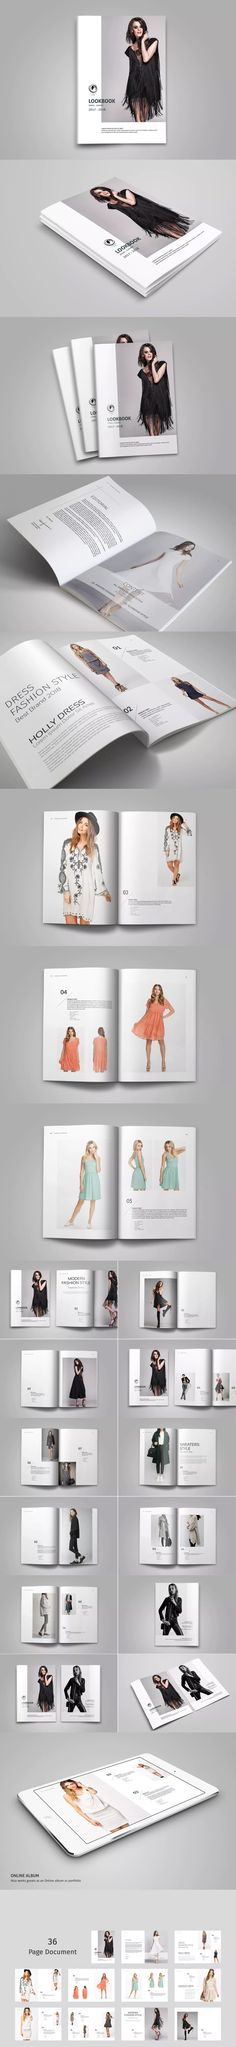 194 best lookbook templates images on pinterest in 2018 a4